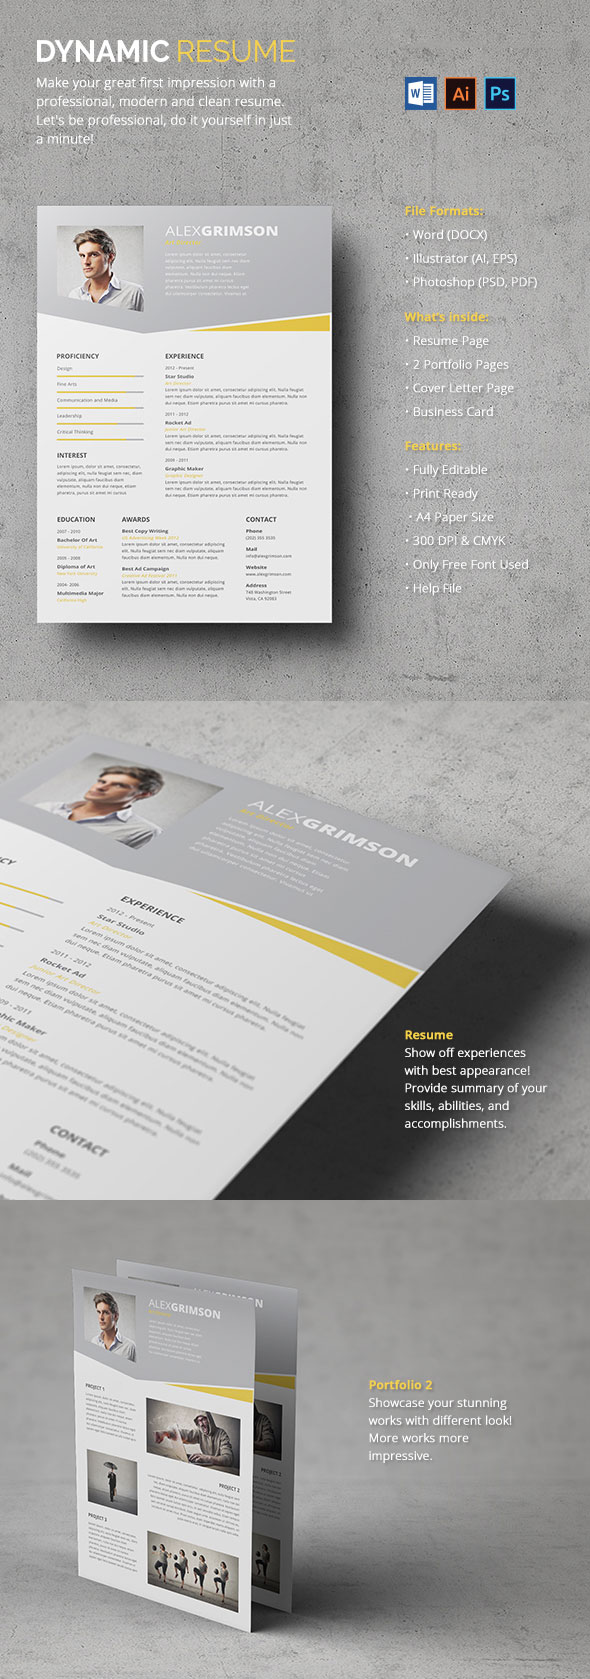 creative resume templates to land a new job in style dynamic resume portfolio pages included